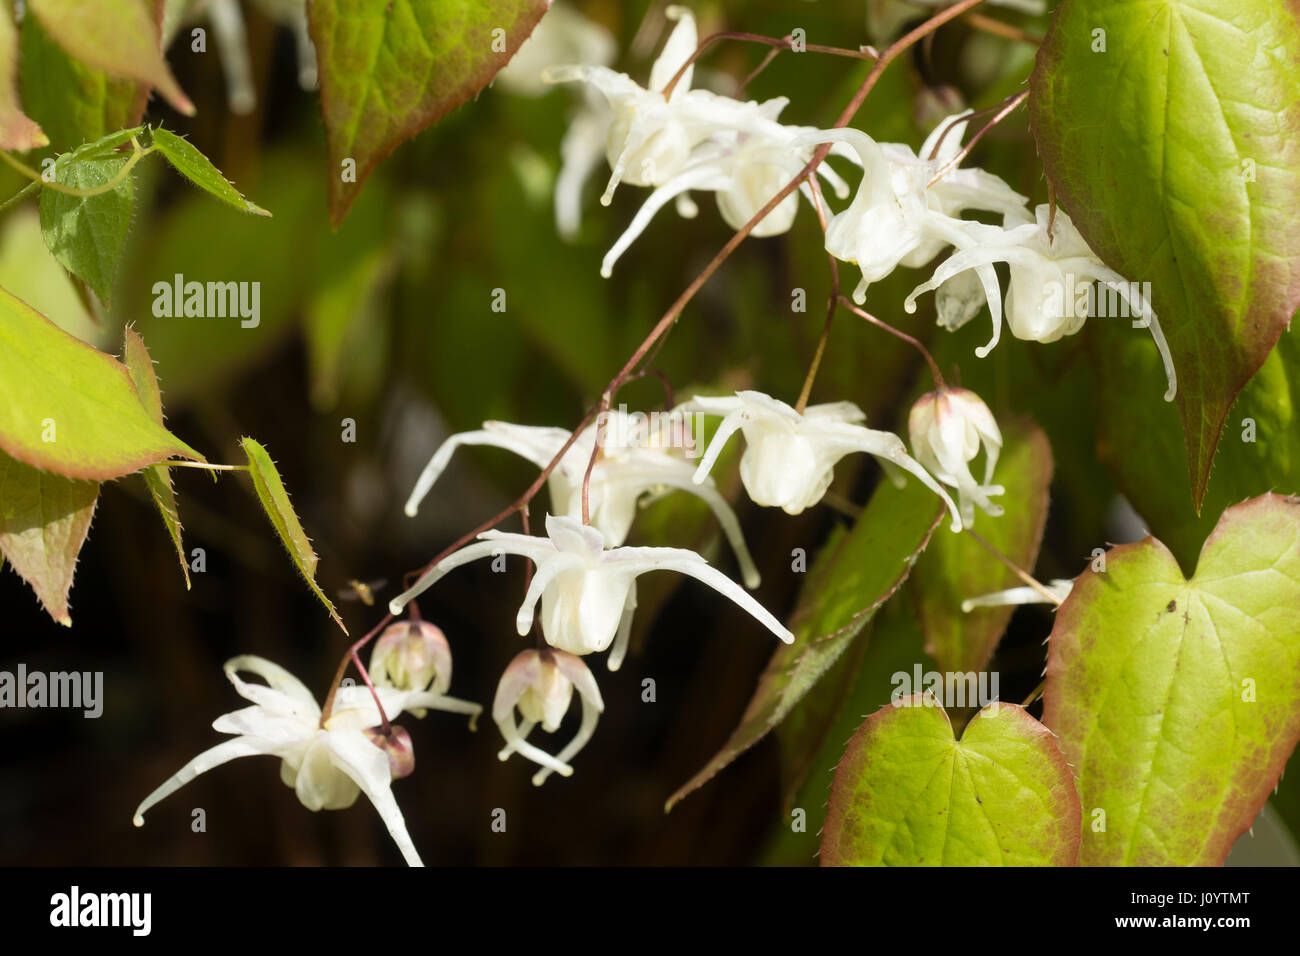 White spring flowers of the hardy perennial barrenwort, Epimedium grandiflorum 'White Queen' - Stock Image